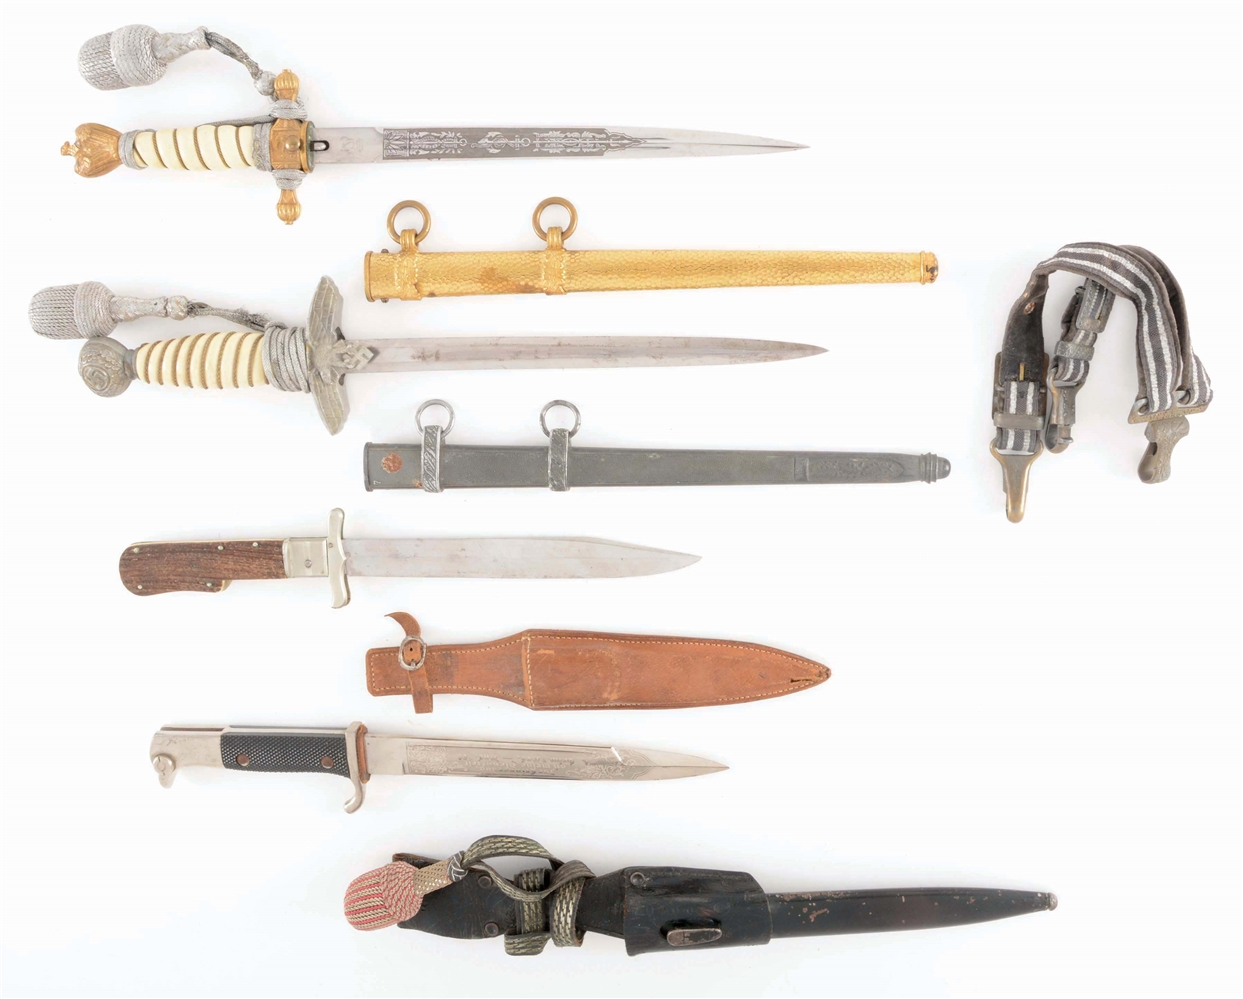 LOT OF 4: THIRD REICH HEER AND KRIEGSMARINE DAGGERS, FOLDING KNIFE, AND DRESS BAYONET.